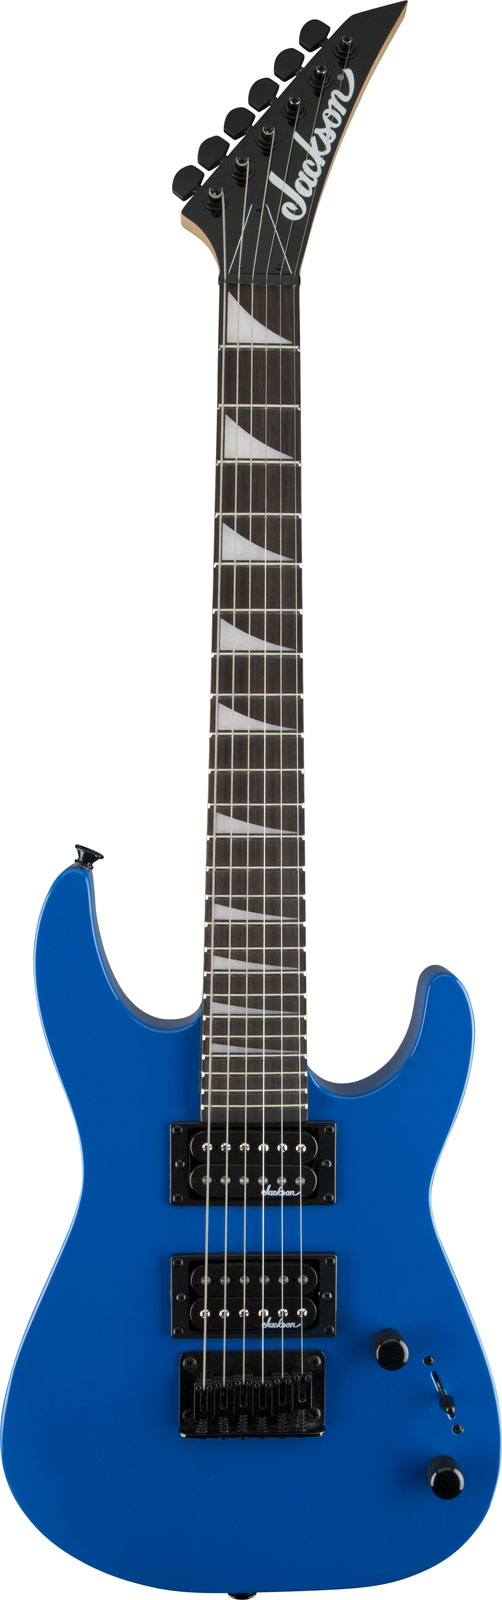 Jackson Guitare Electrique Jackson Js 1x Dinky Minion Rn Bright Blue